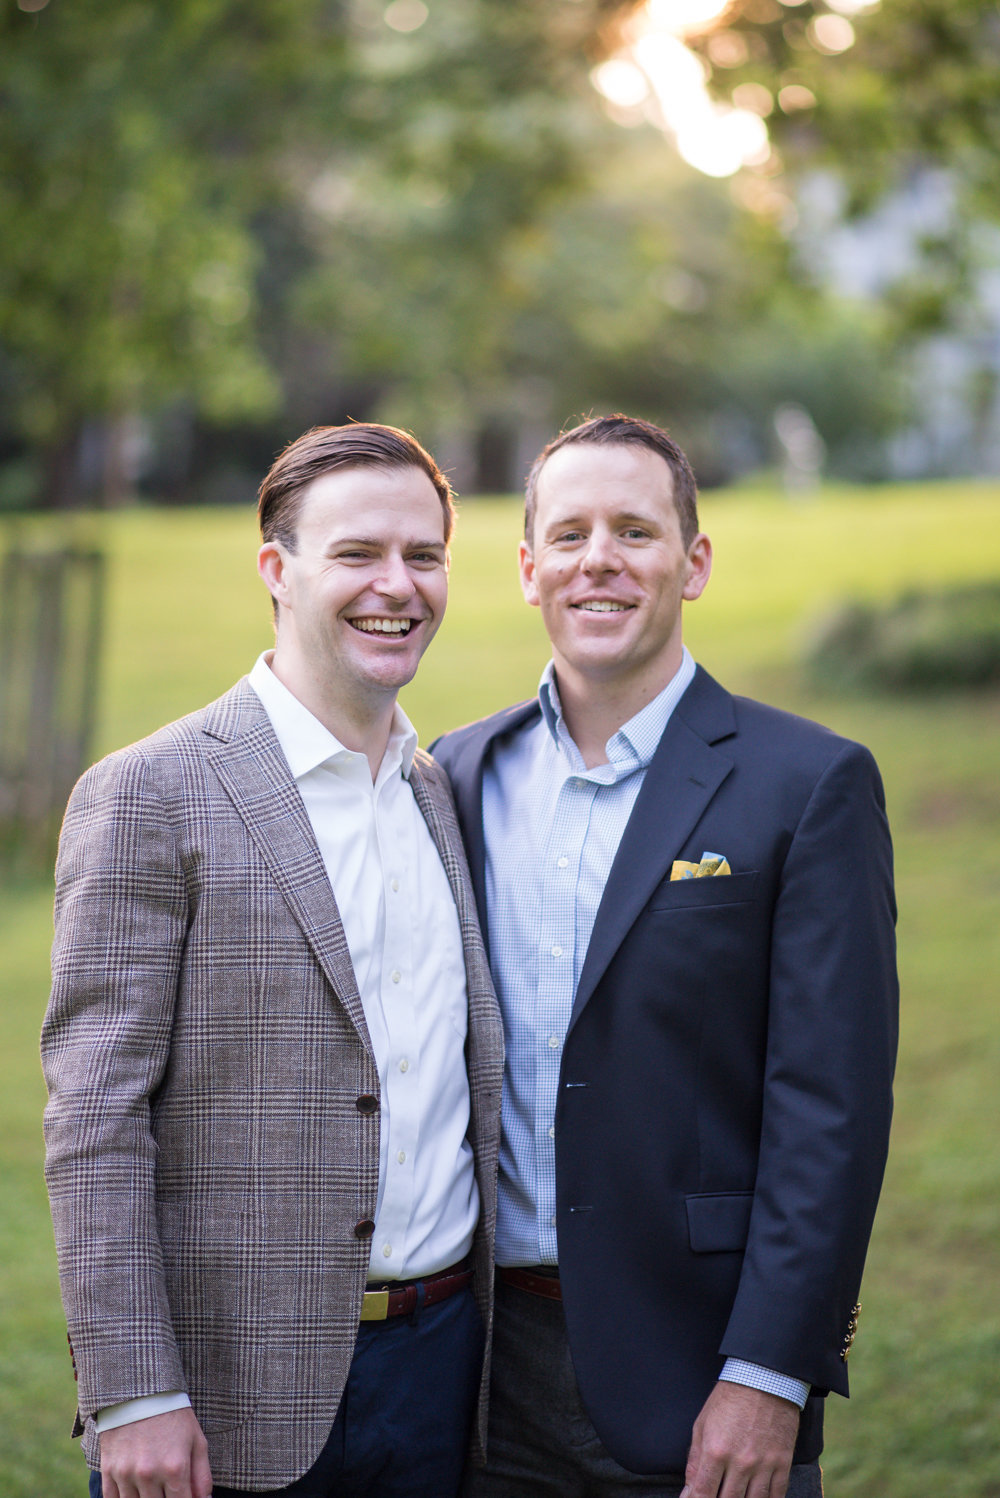 Gay Engagement Session Atlanta Georgia Wedding Photographer-10